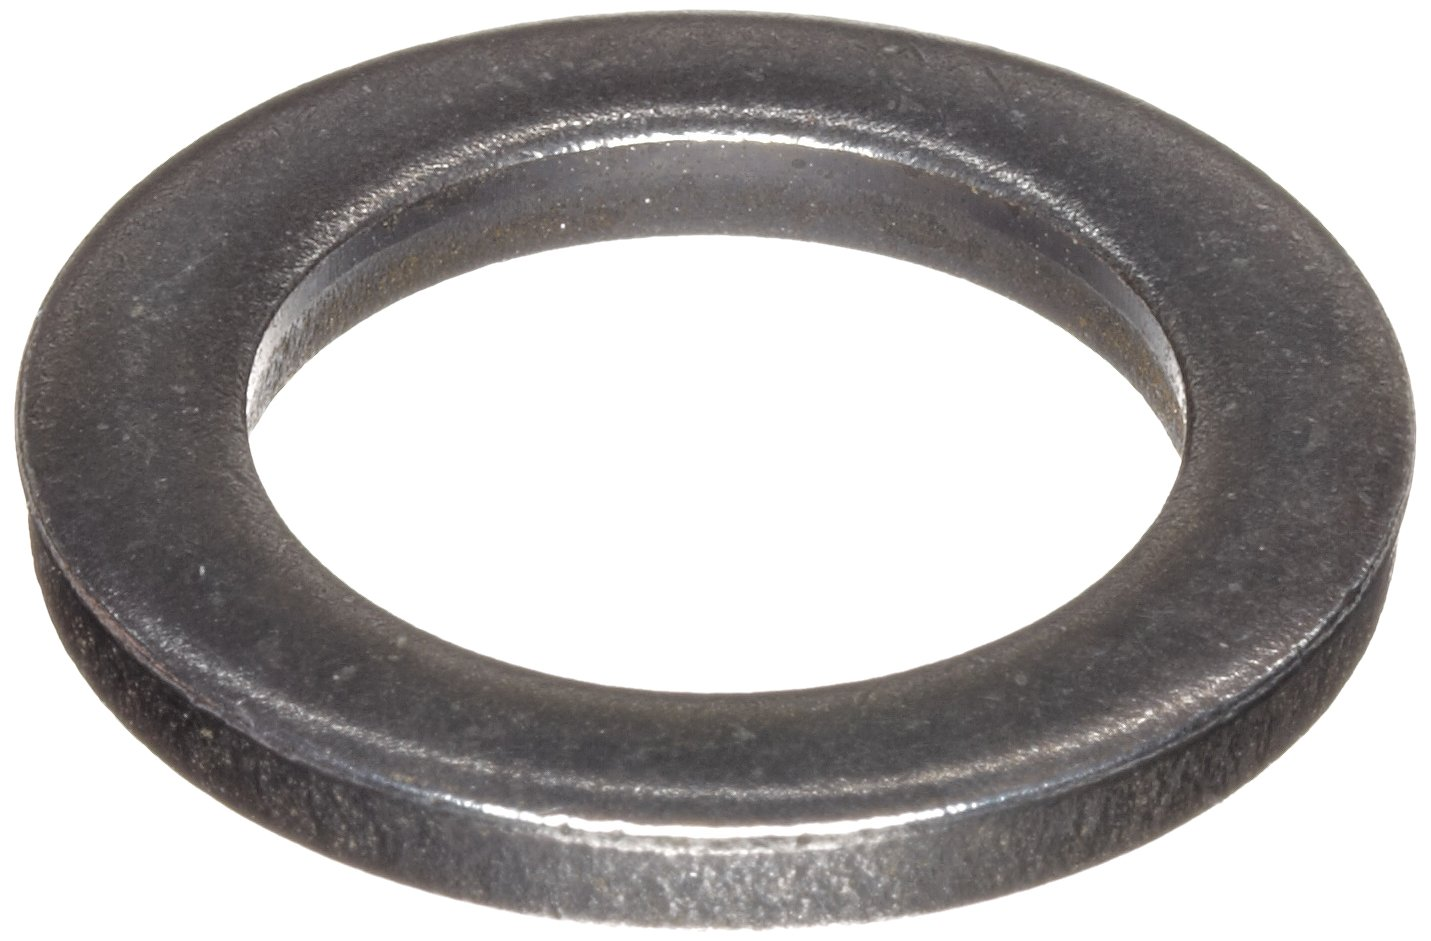 C1074/C1095 Spring Steel Round Shim, Unpolished (Mill) Finish, Spring Temper, ASTM A684, 0.1mm Thickness, 30mm ID, 42mm OD (Pack of 10) by Small Parts (Image #1)